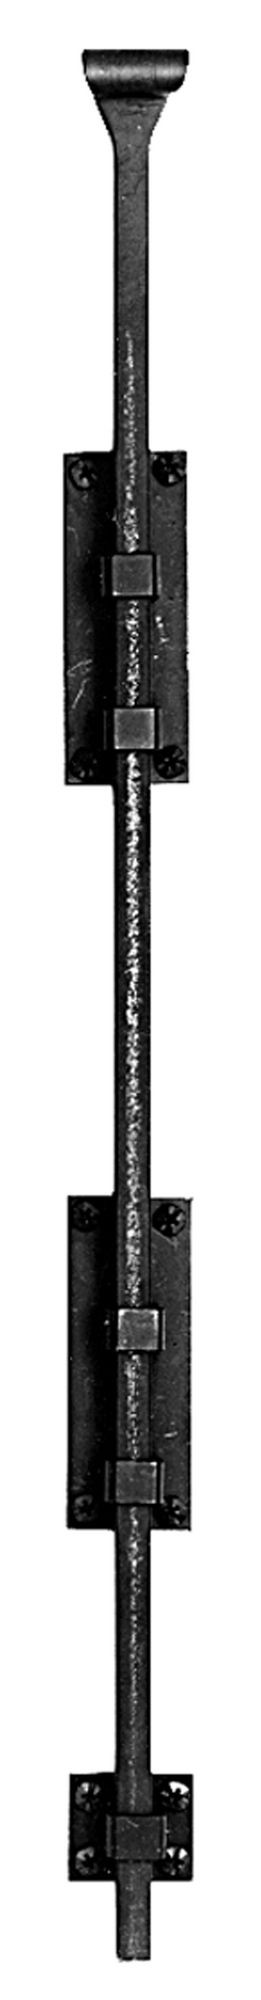 "Acorn ALEBP Cane Bolt 22-3/4"" Rectangular"